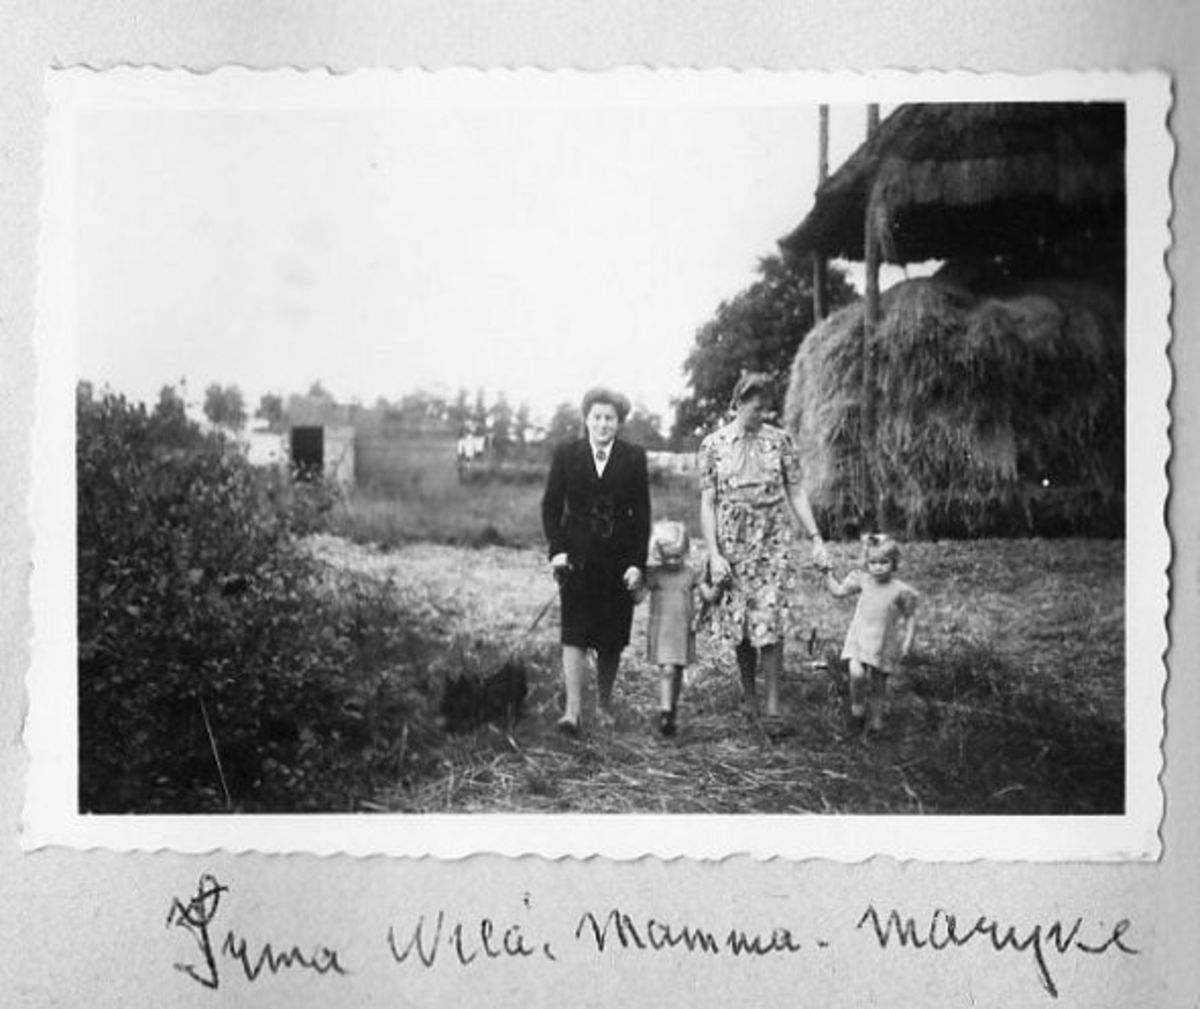 1943 Jewisch girl Irma, my Mom Muys Schram de Jong and daughters Wiea and Marijke. I wasn't born yet.